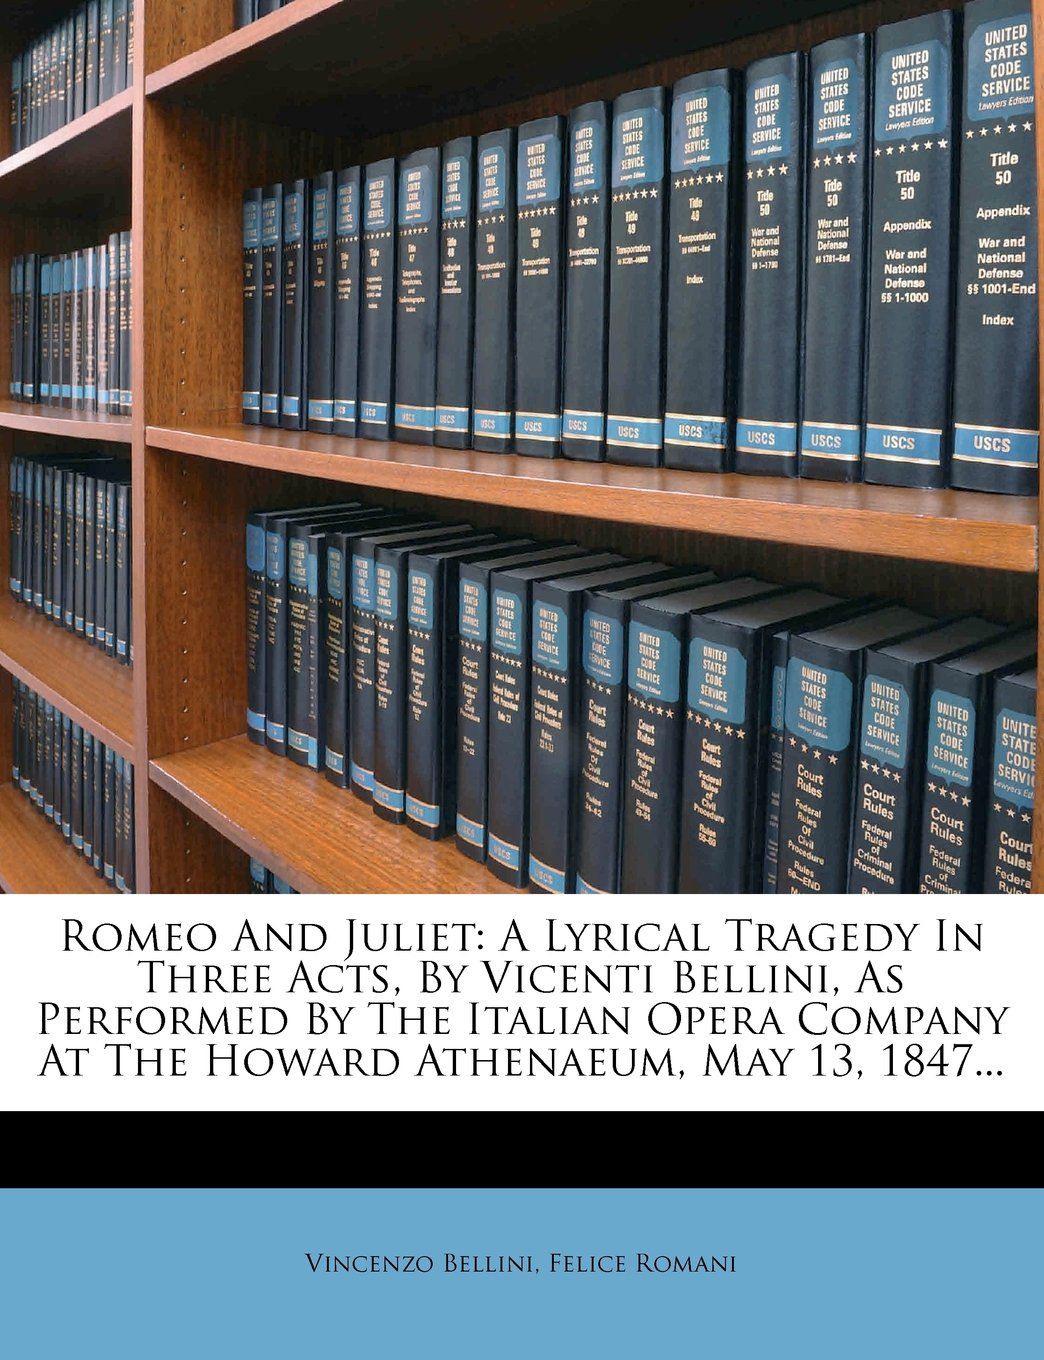 Romeo And Juliet: A Lyrical Tragedy In Three Acts, By Vicenti Bellini, As Performed By The Italian Opera Company At The Howard Athenaeum, May 13, 1847... pdf epub